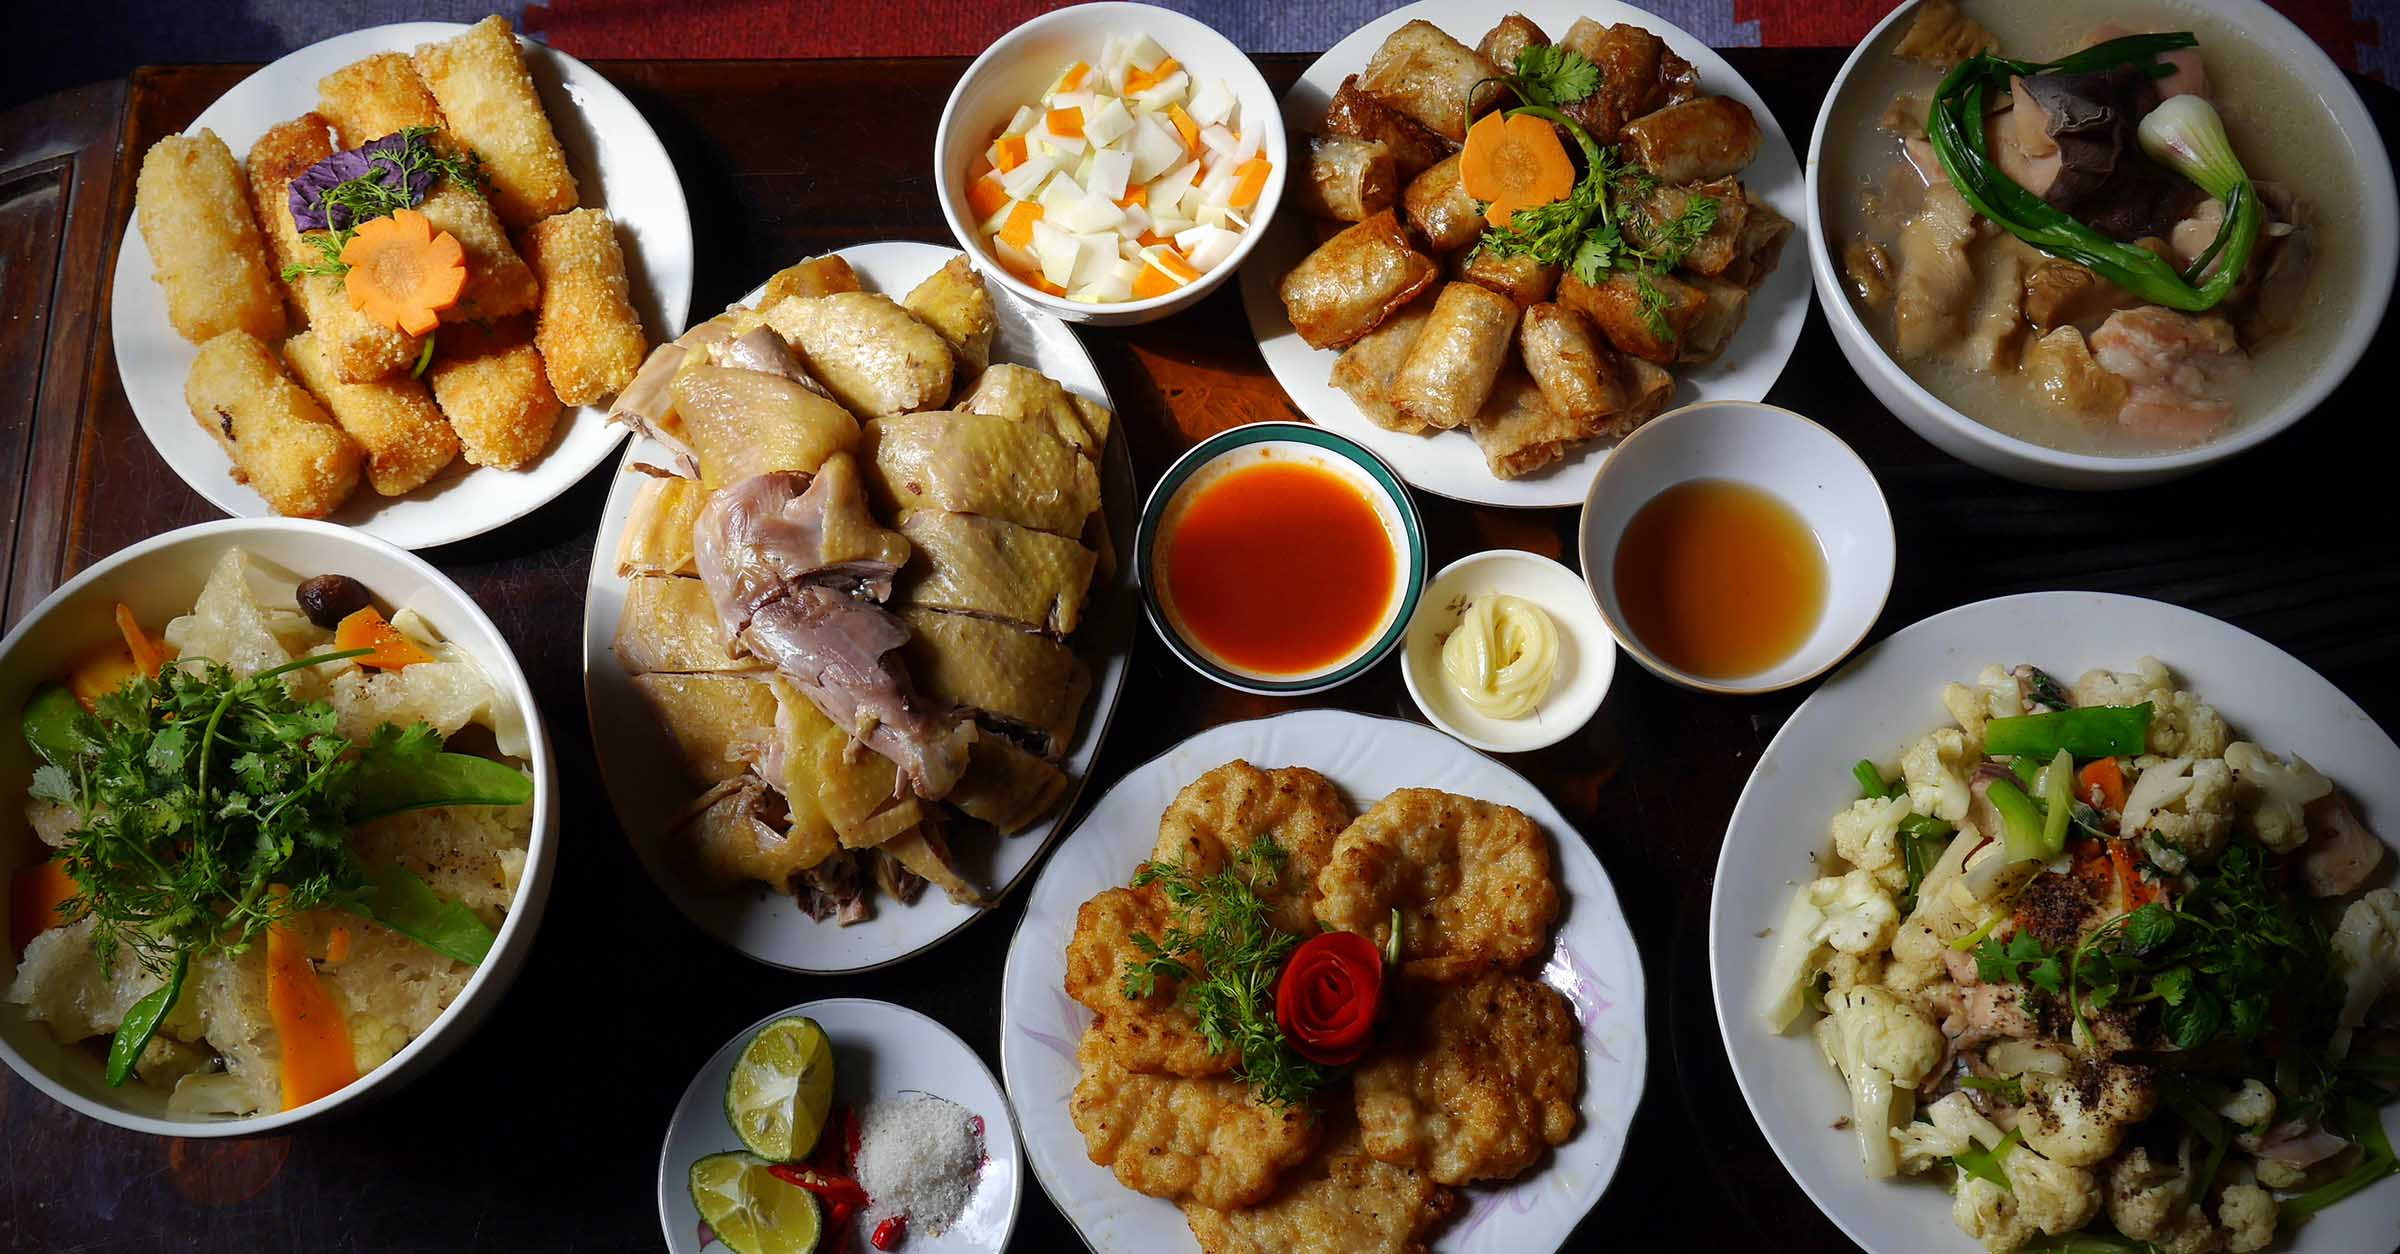 Where To Find The Best Vietnamese Food In Ho Chi Minh City - Vietcetera